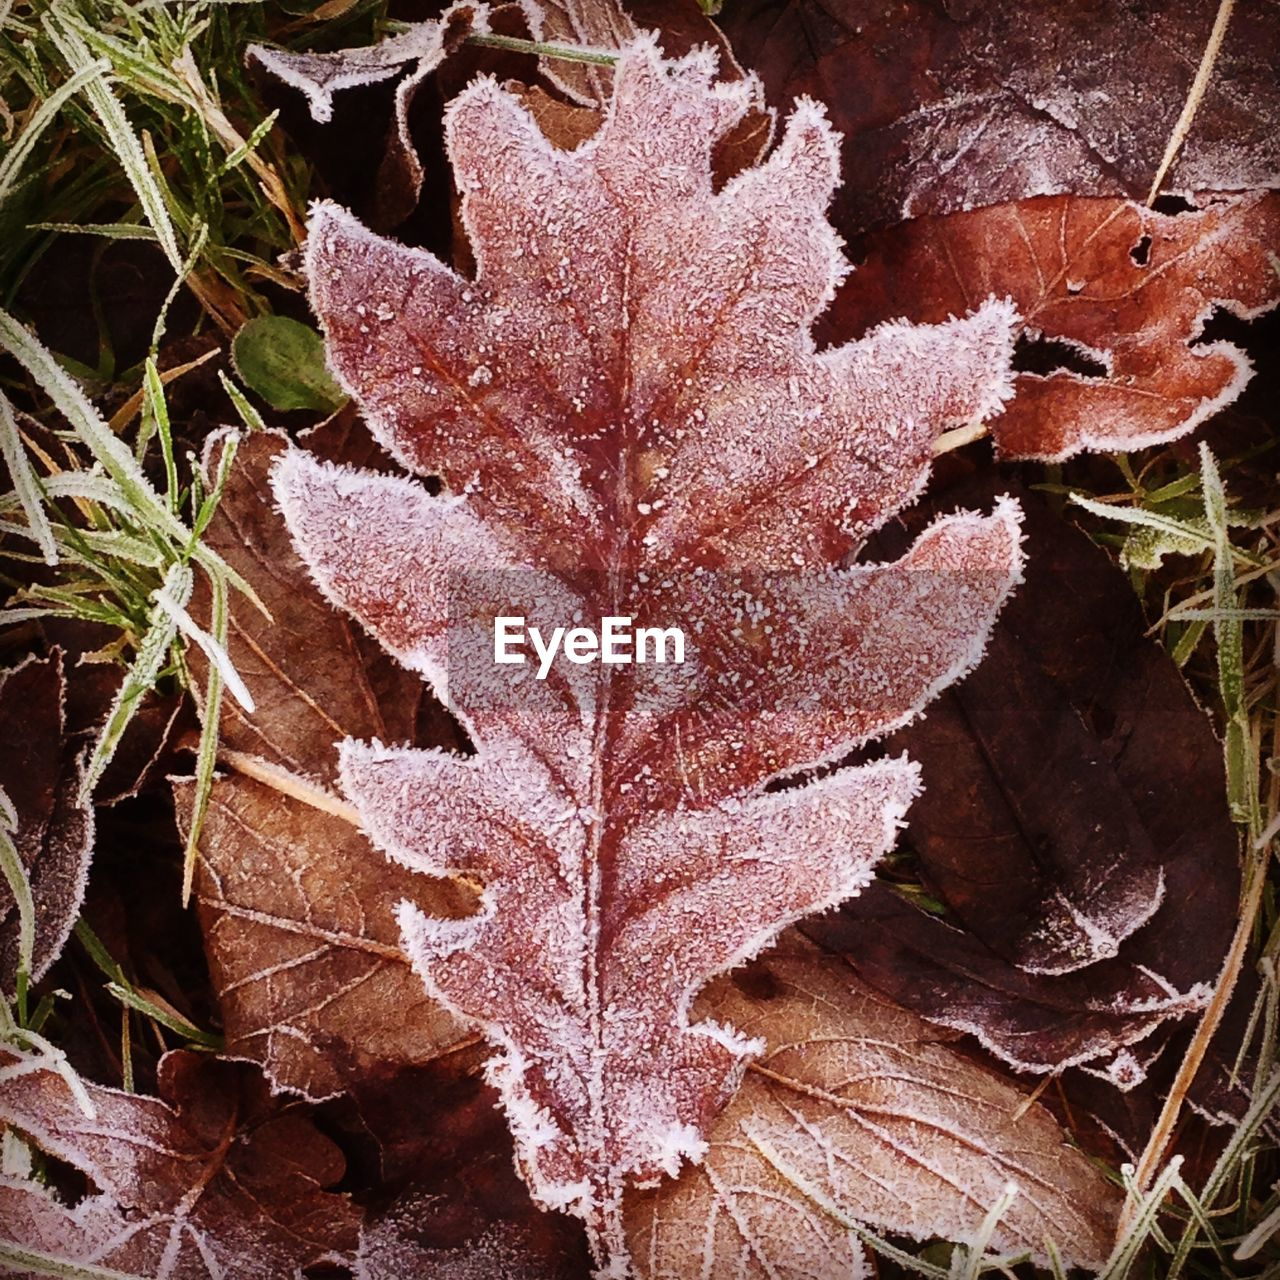 leaf, autumn, nature, cold temperature, dry, day, winter, no people, outdoors, weather, close-up, change, fragility, beauty in nature, frozen, maple, maple leaf